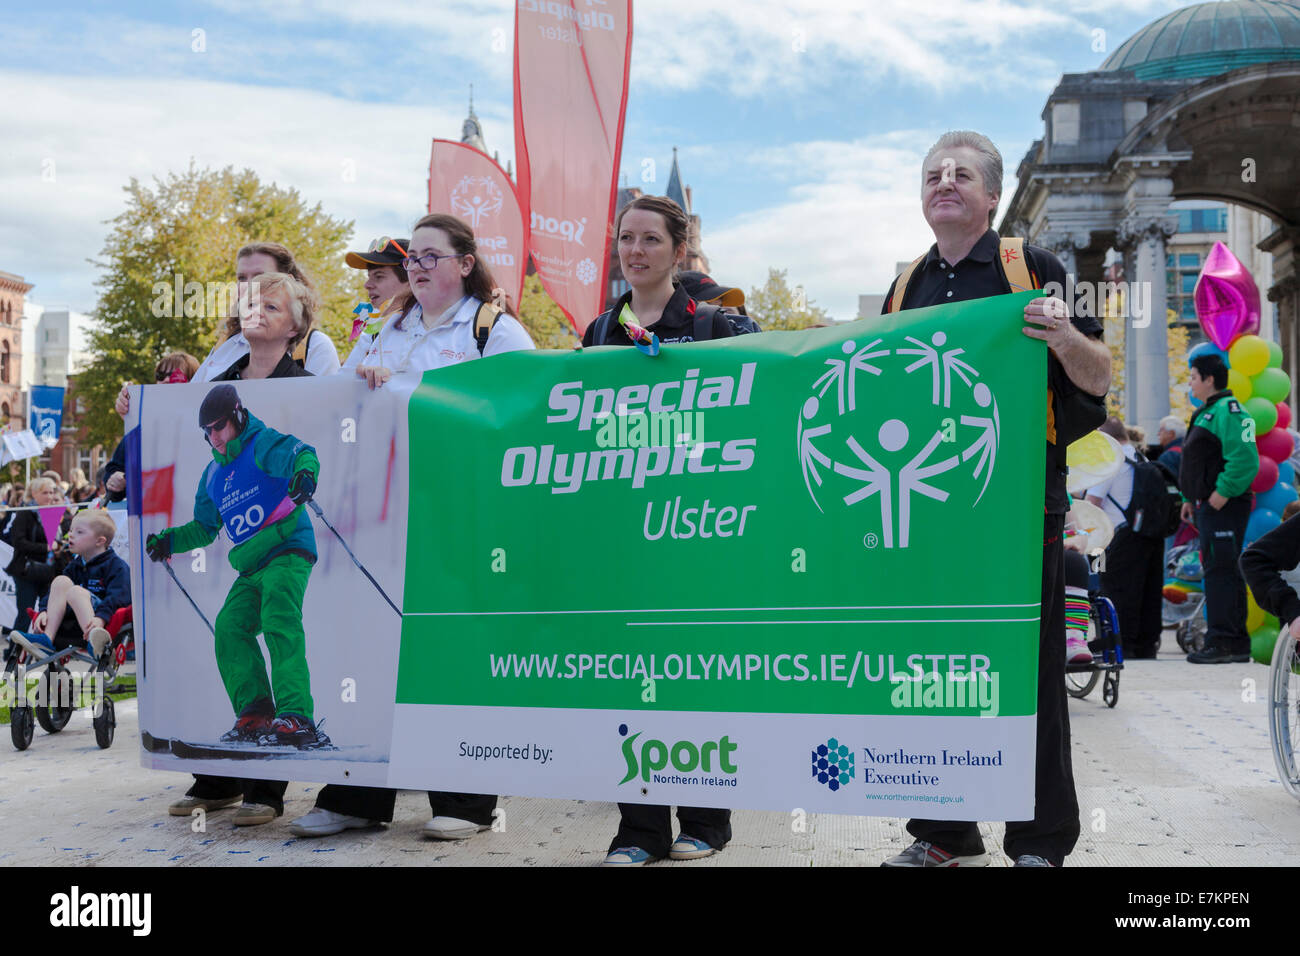 Belfast, Northern Ireland, UK. 20 September 2014. Disability Pride, Special Olympics, Ulster, City Hall. Credit: - Stock Image